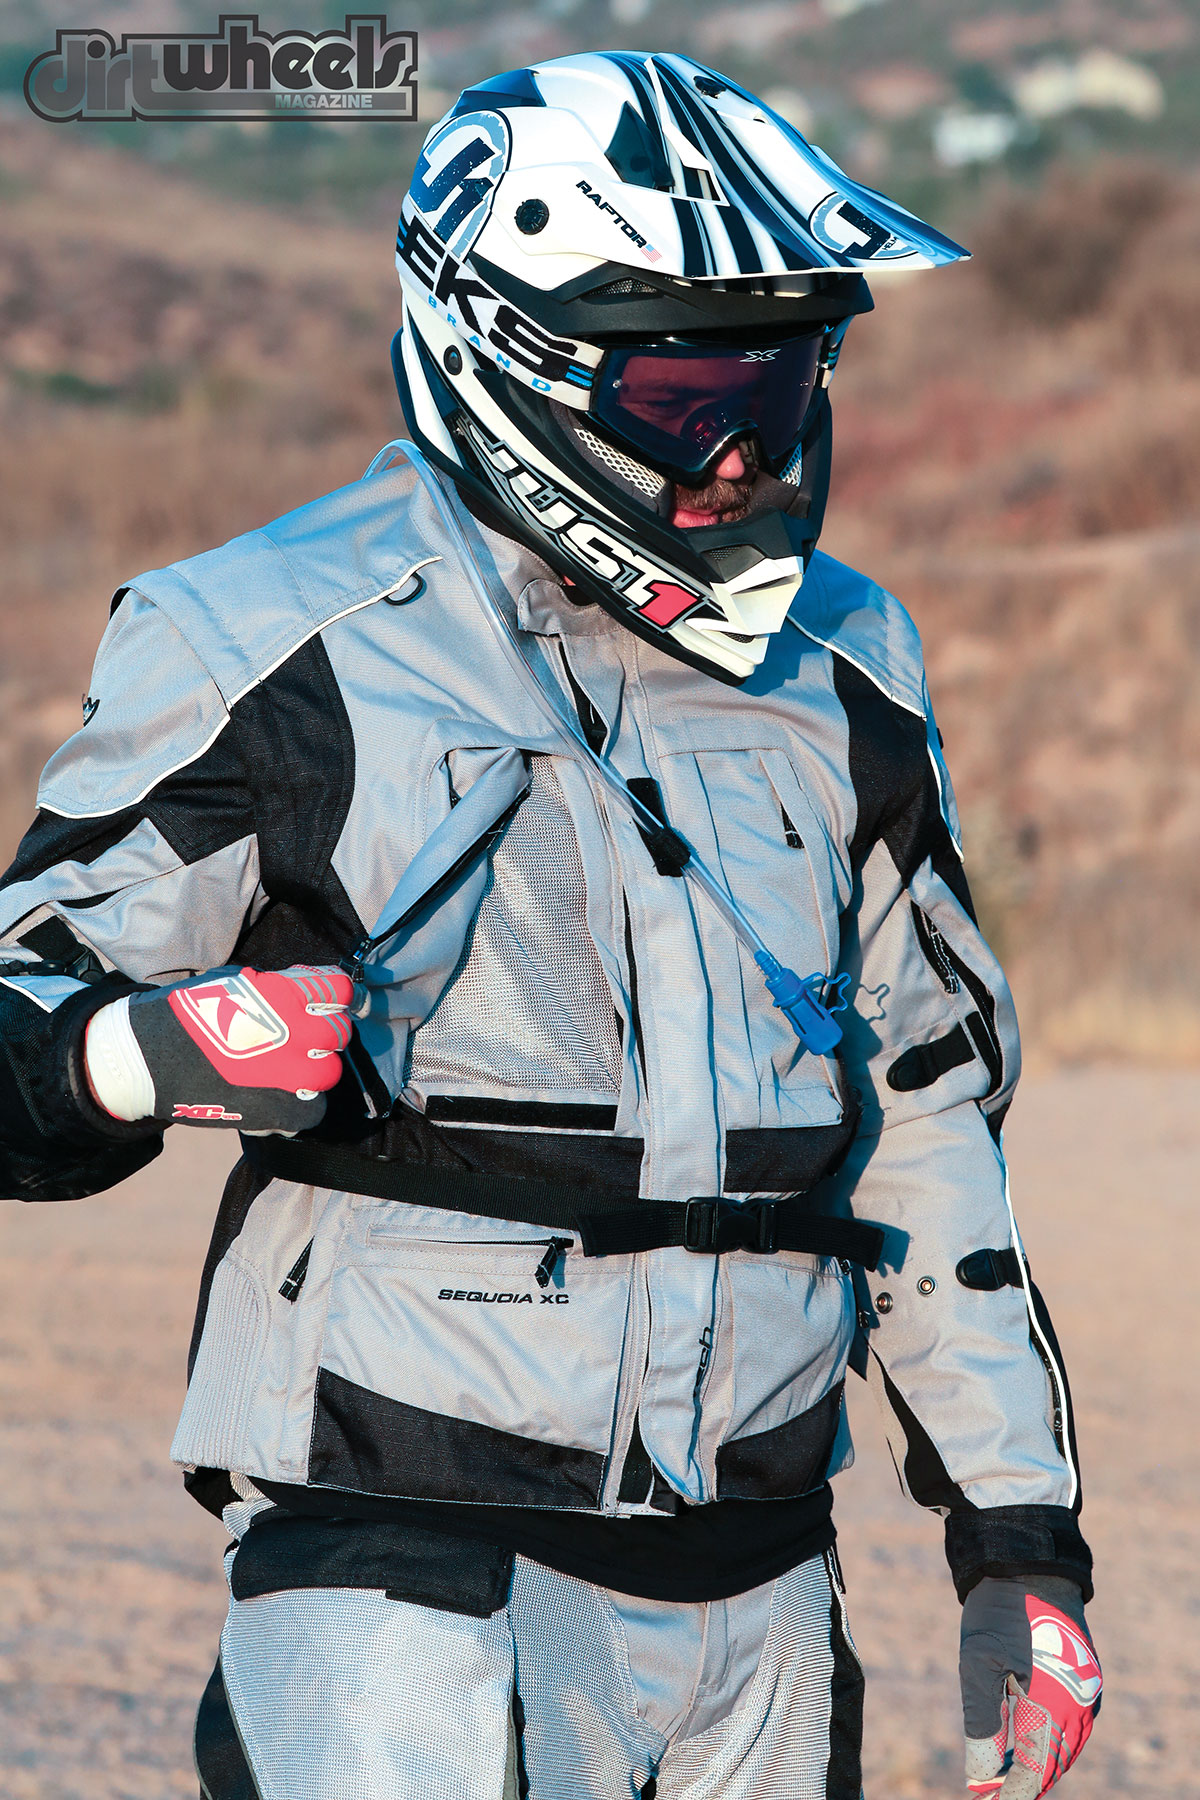 One of the venting features is removable, zip-off pockets that reveal venting material that flows into the entire jacket to keep you cool during your ride. There is also a large venting exhaust area on the back of the jacket for added airflow.